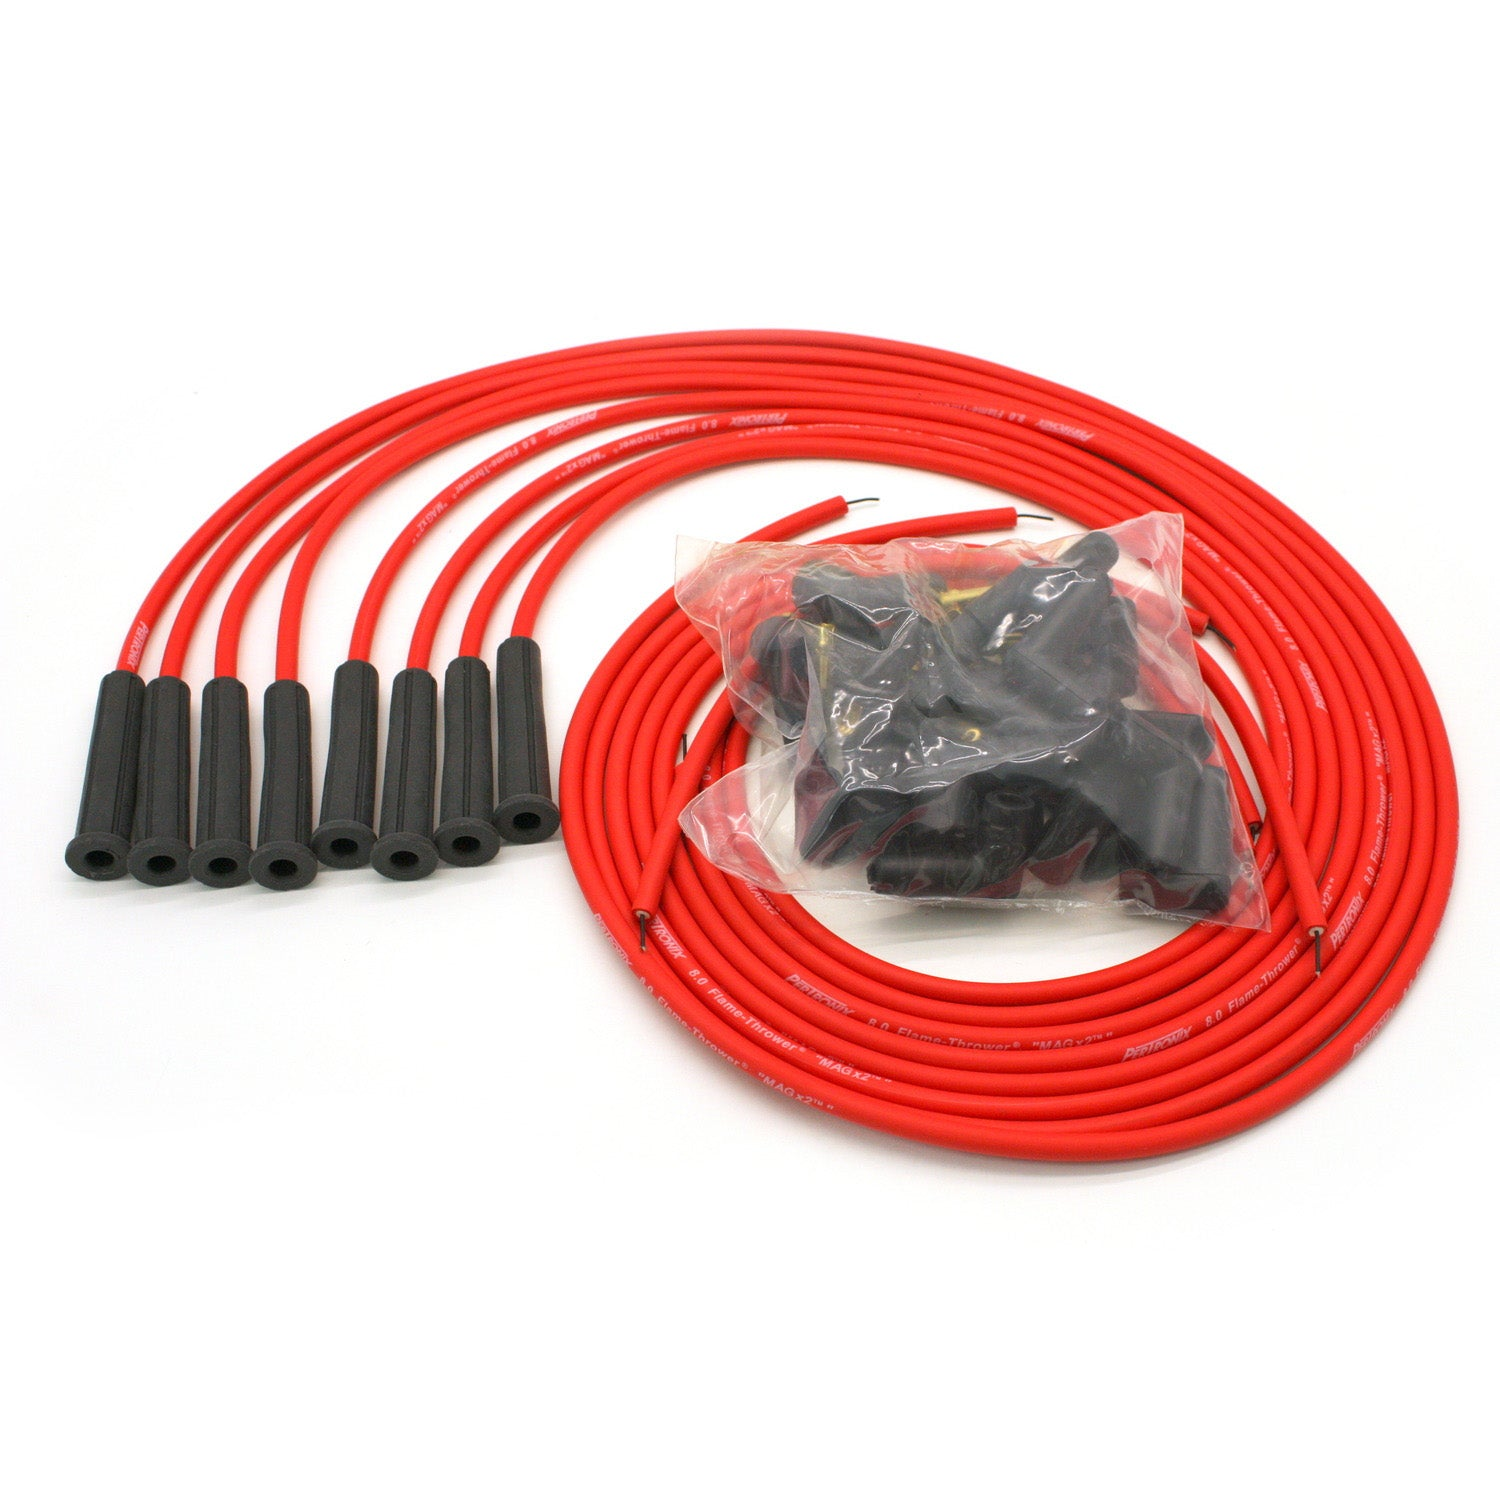 PerTronix 808480 Flame-Thrower Spark Plug Wires 8 cyl 8mm Universal 180 Degree Red